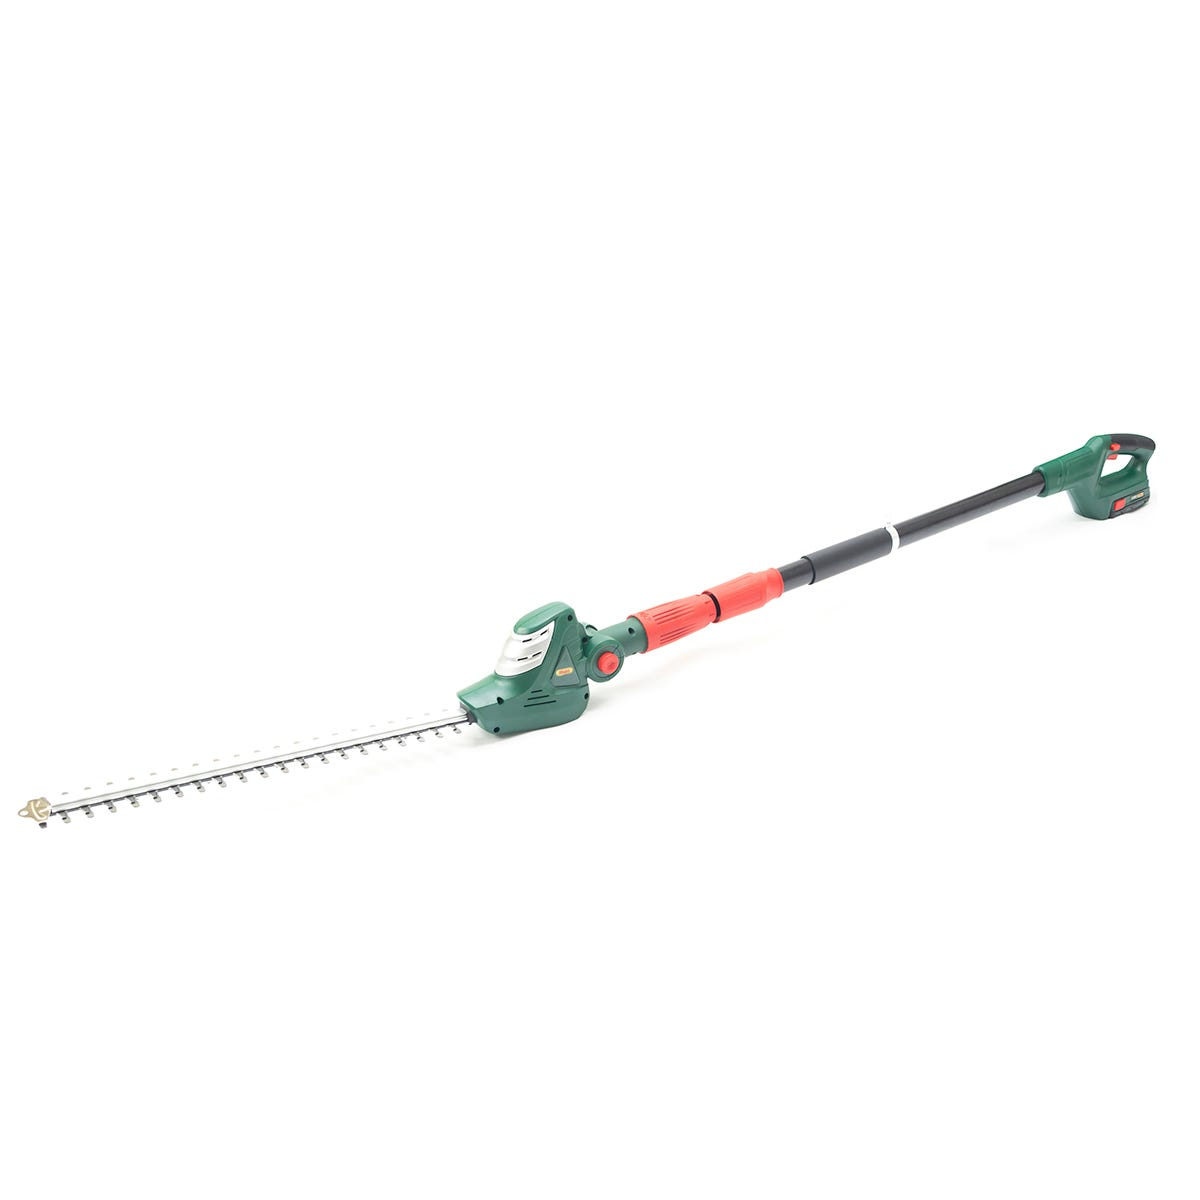 Webb 20V Long Reach Hedge Trimmer with Battery & Charger